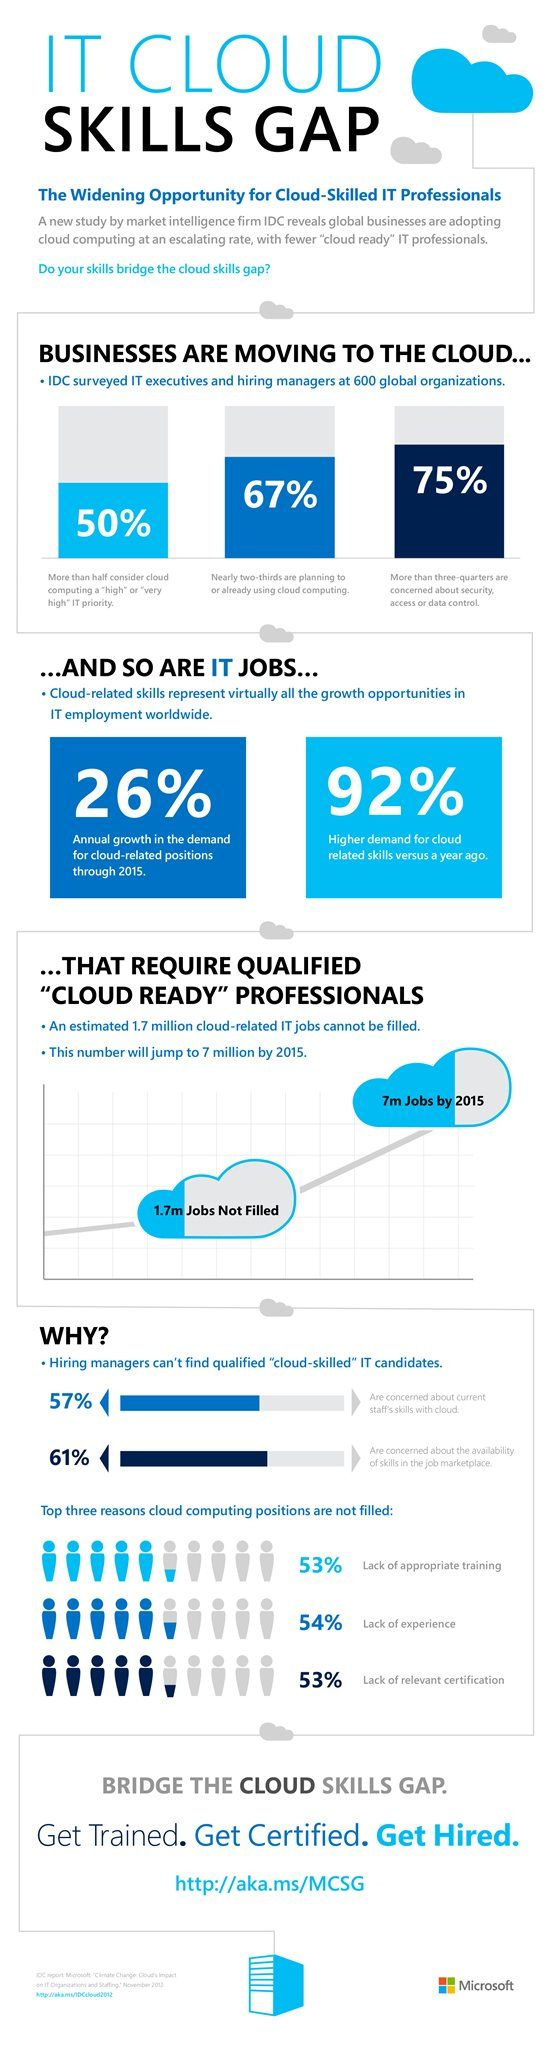 IT Cloud Skills Gap - Based on an IDC study, December 2012. #technology #career #jobs